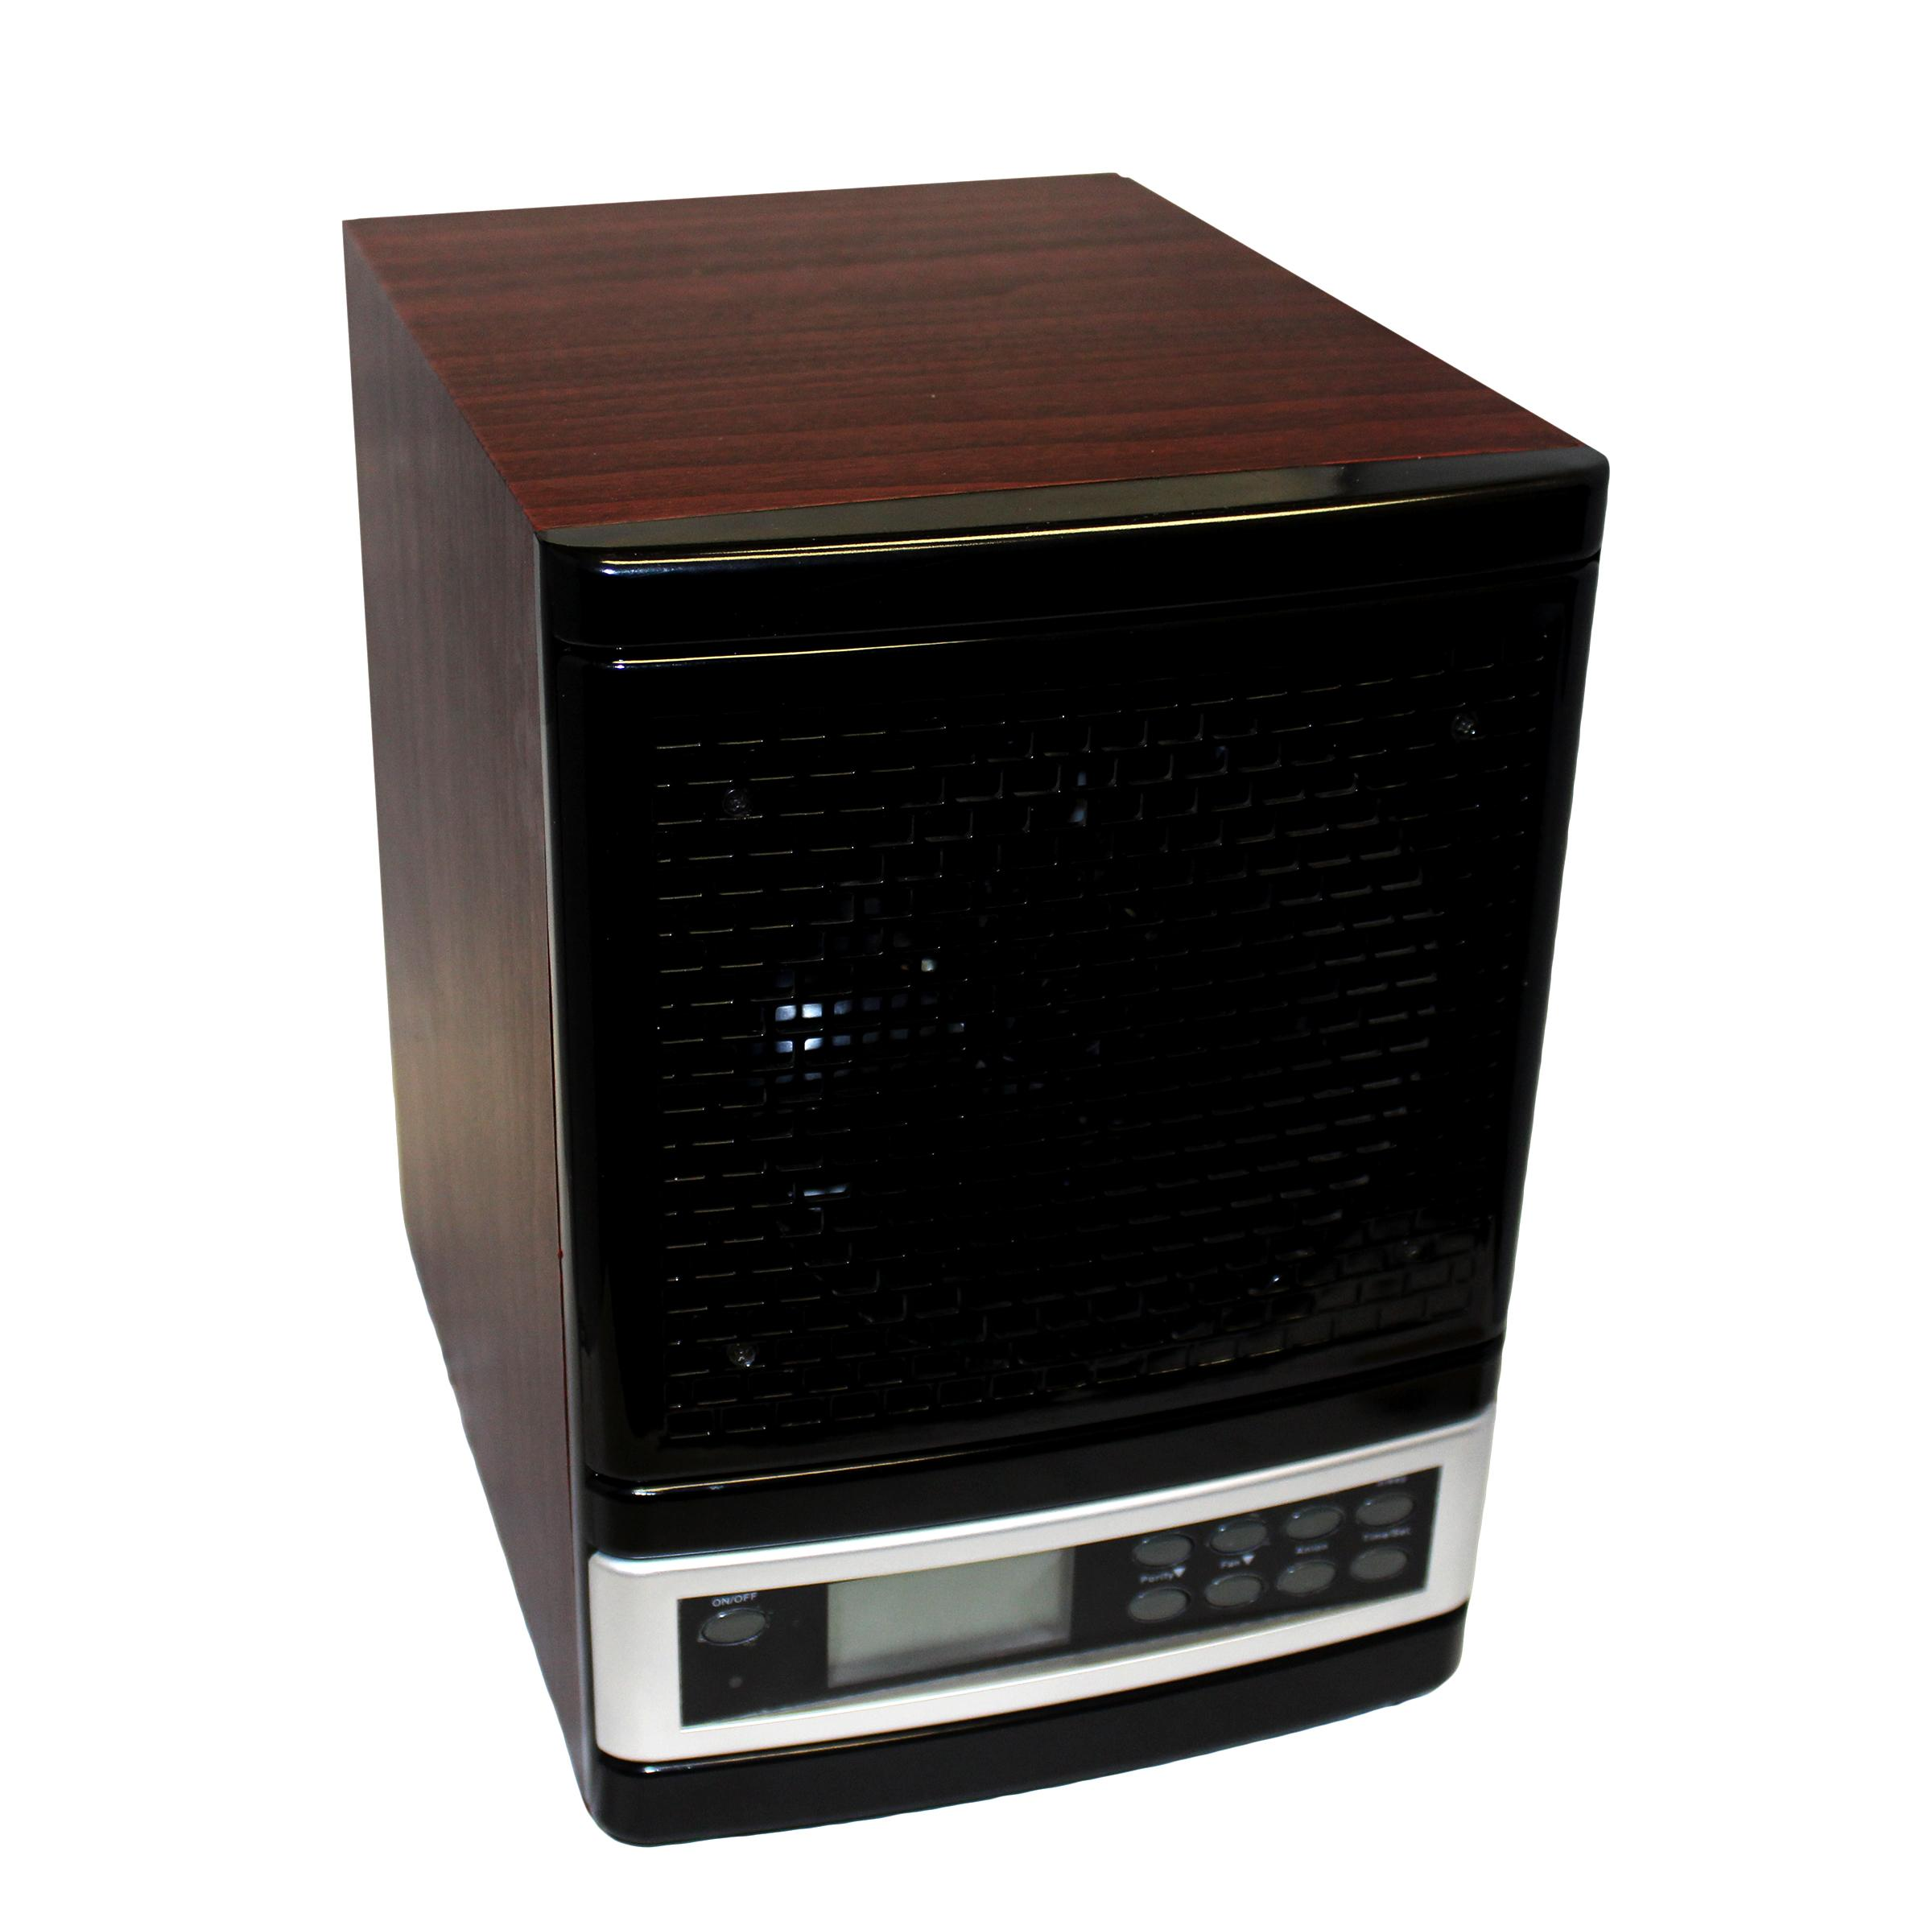 atlas ionic ozone air purifier with washable hepa filter. Black Bedroom Furniture Sets. Home Design Ideas